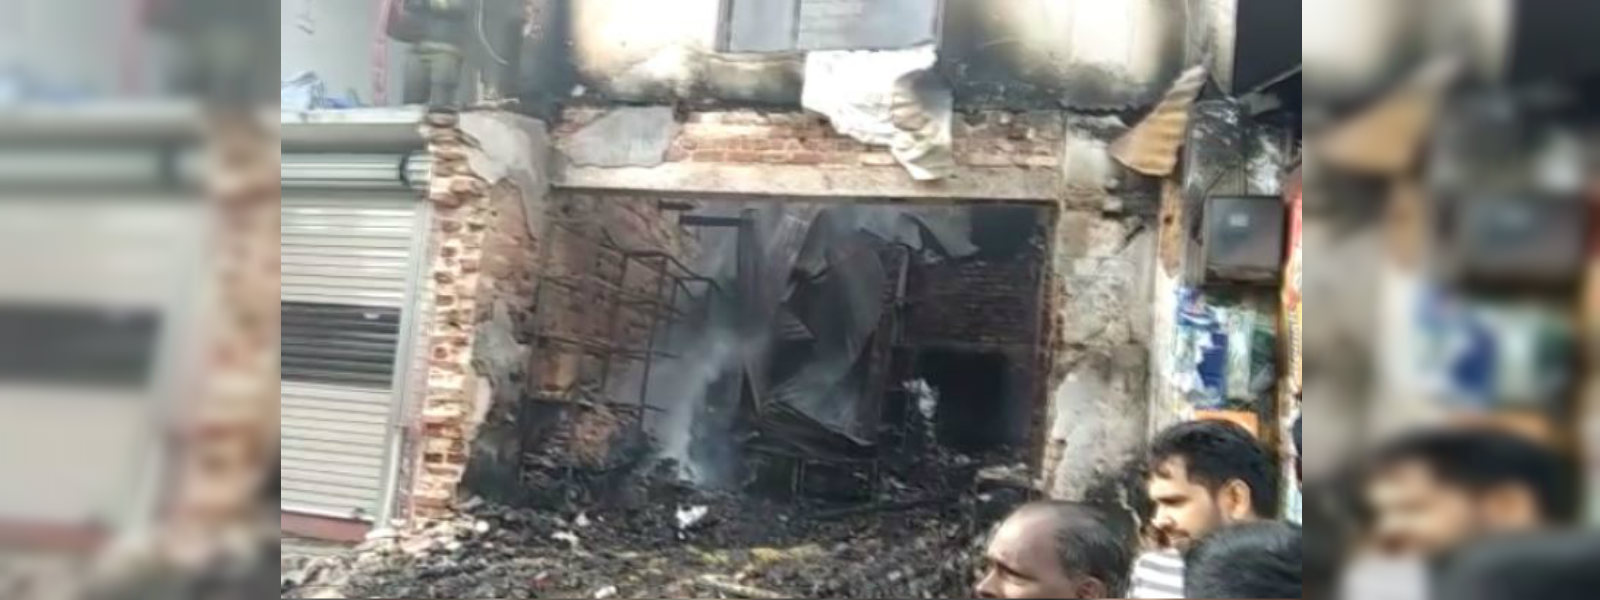 Fire in Passara store claims 3 lives